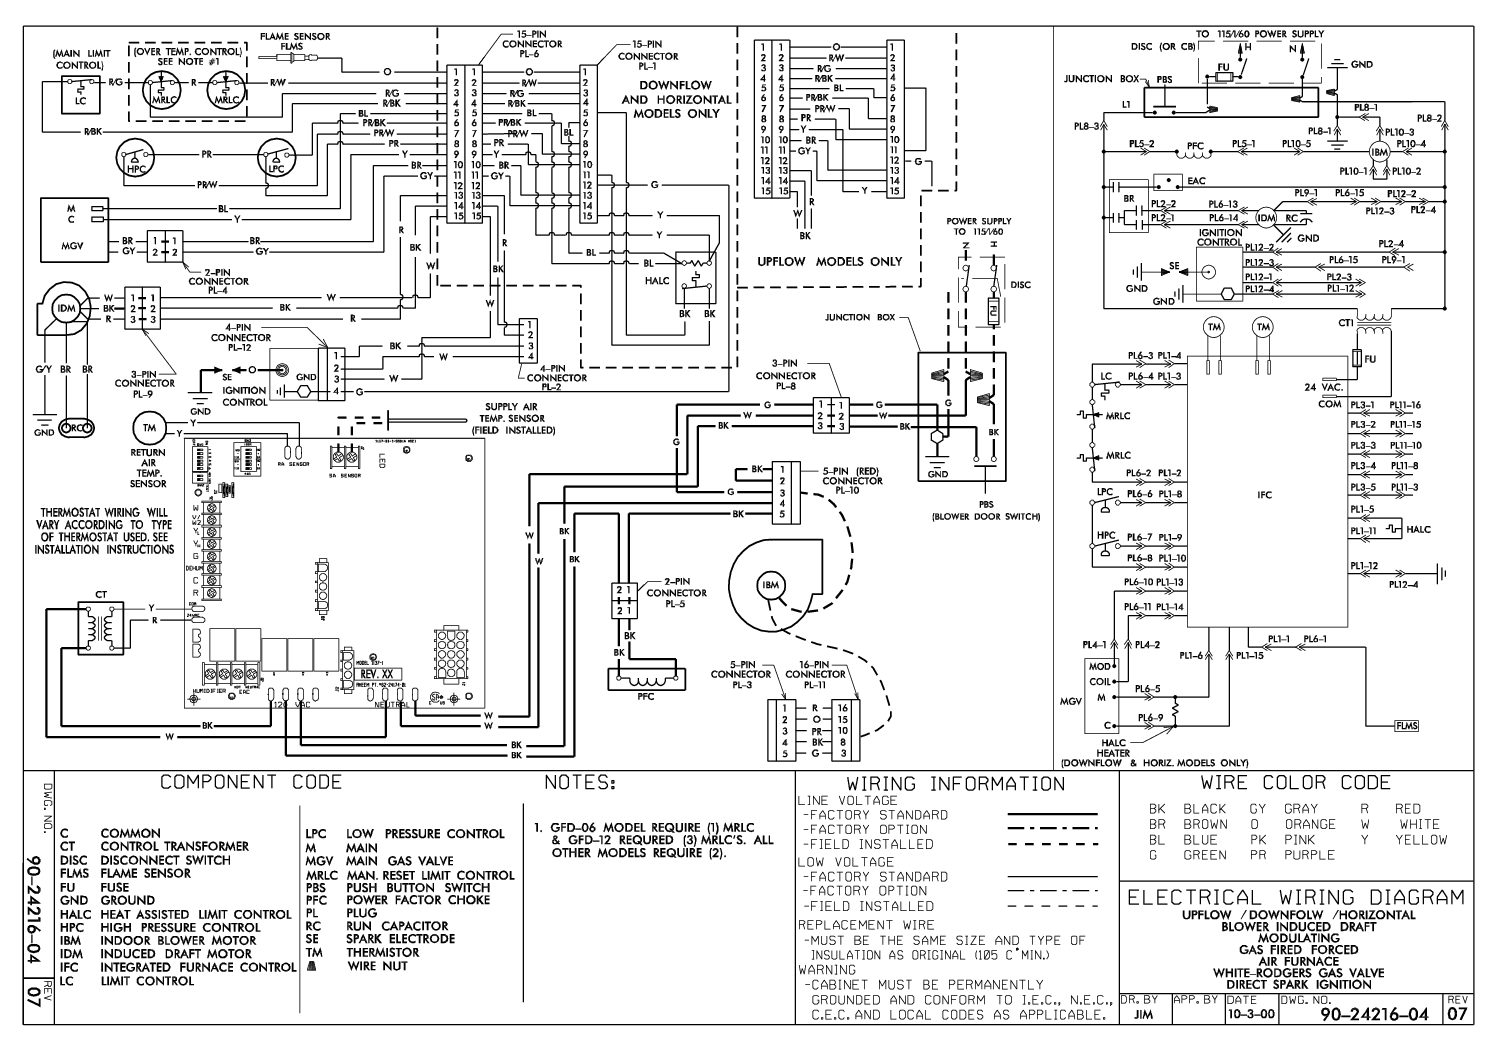 Older Gas Furnace Wiring Diagram Wiring Diagram